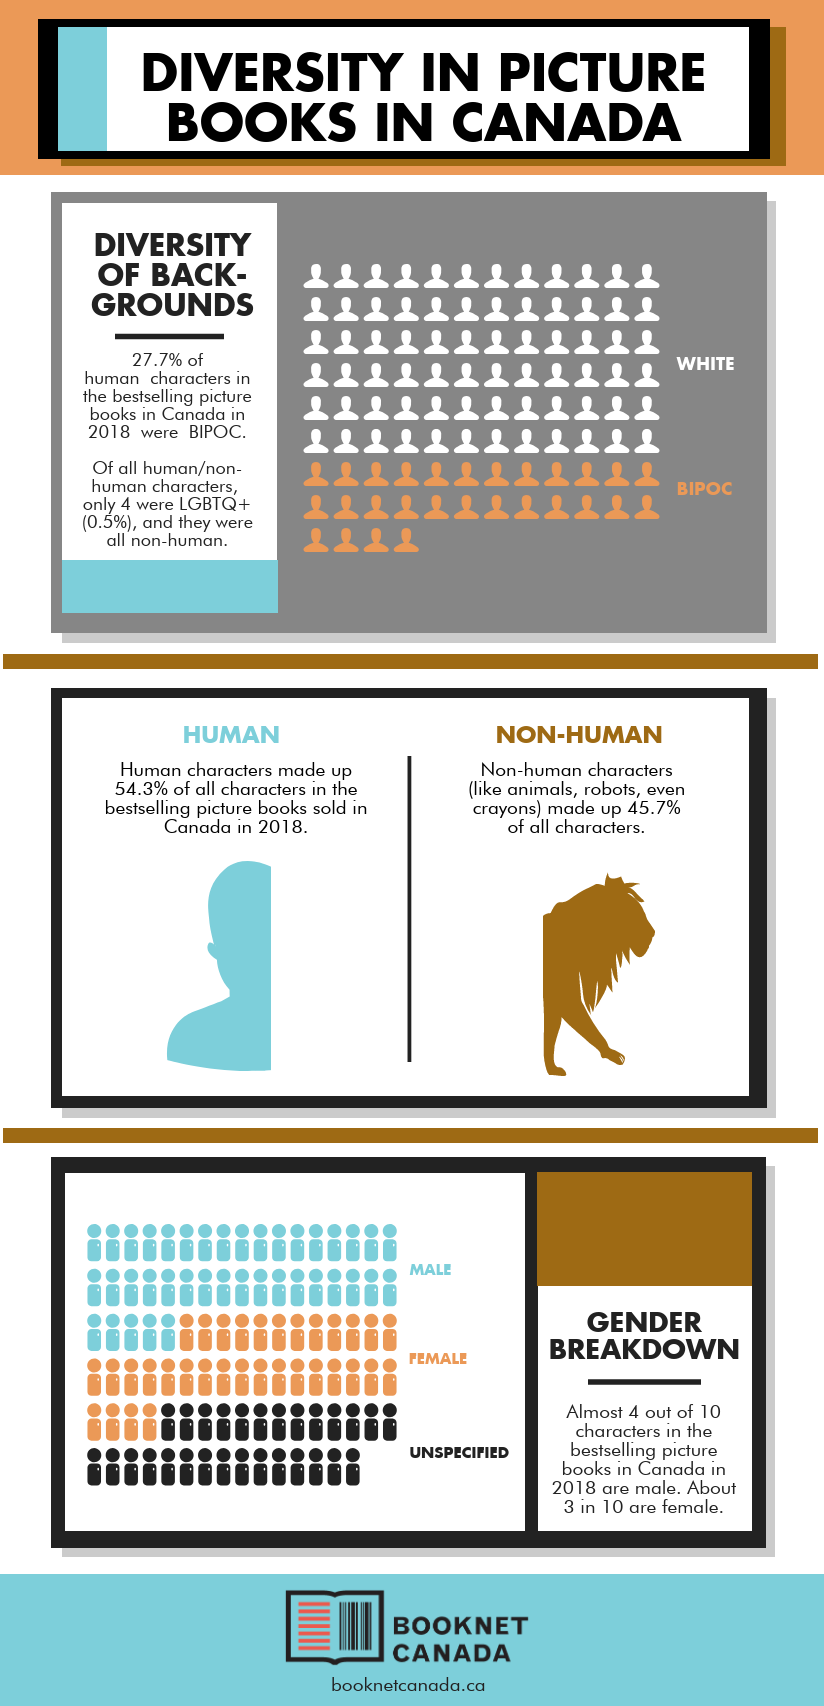 Infographic. Stats are repeated in the text of the post.